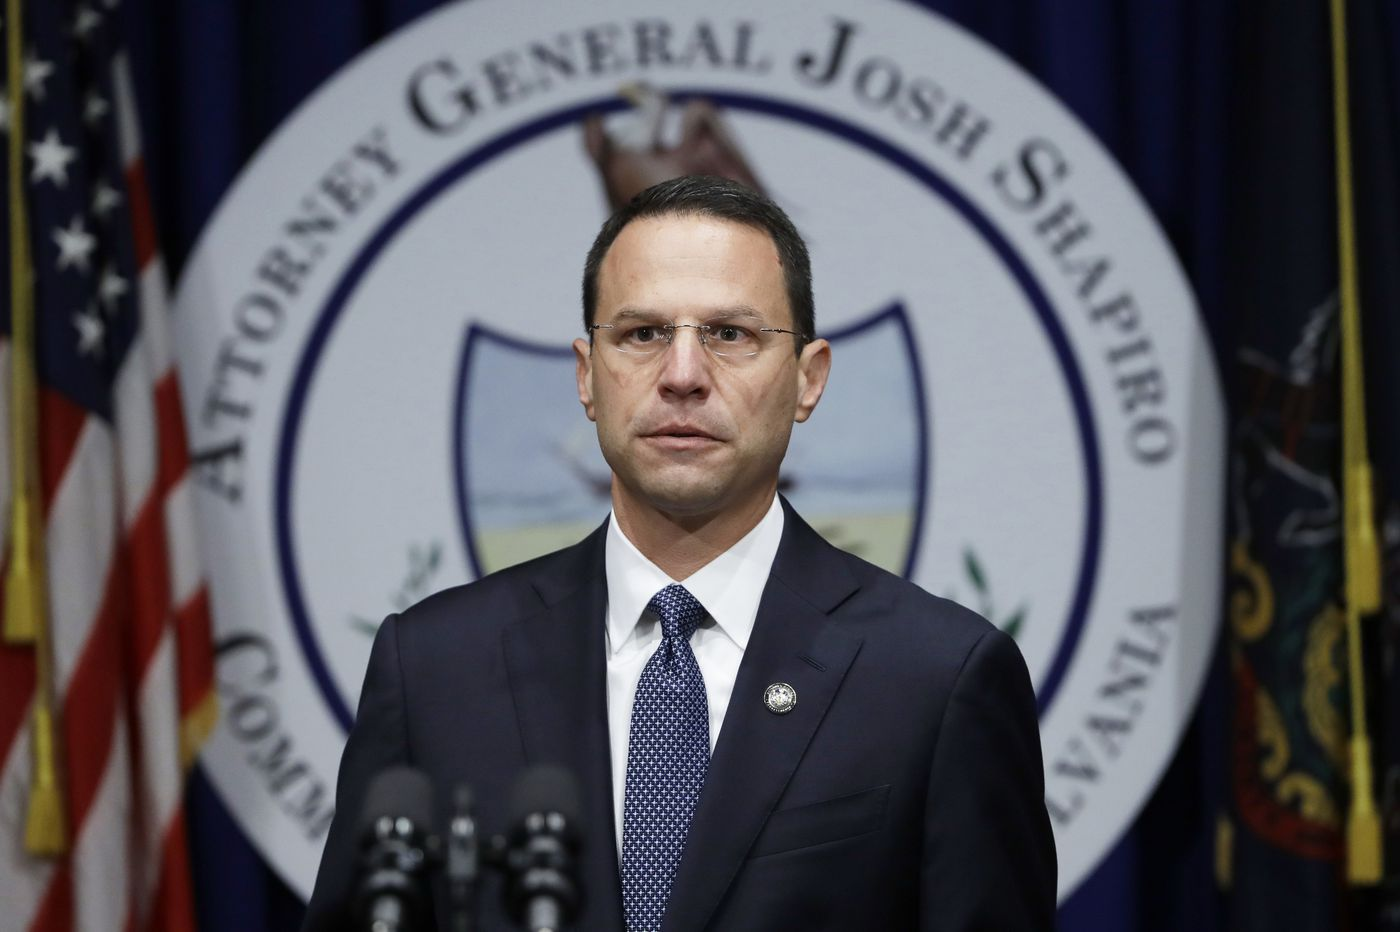 Pa. AG Shapiro claims win vs. Navient student loan servicer